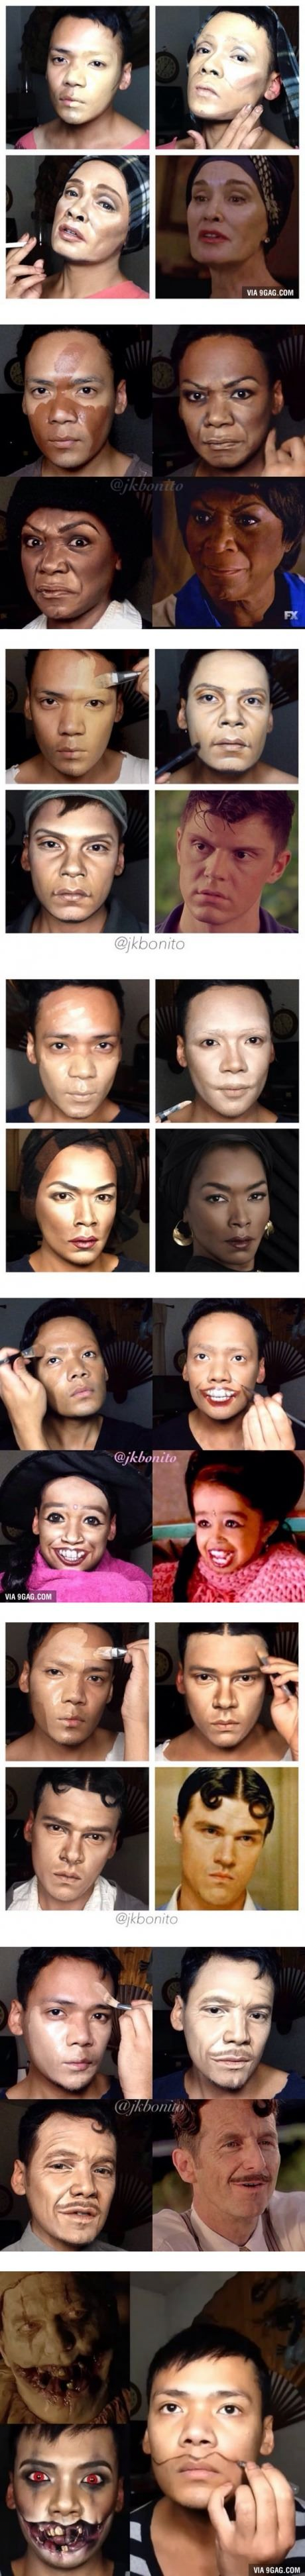 "Guy Transforms Himself Into Every ""American Horror Story"" Character With Nothing But Makeup"